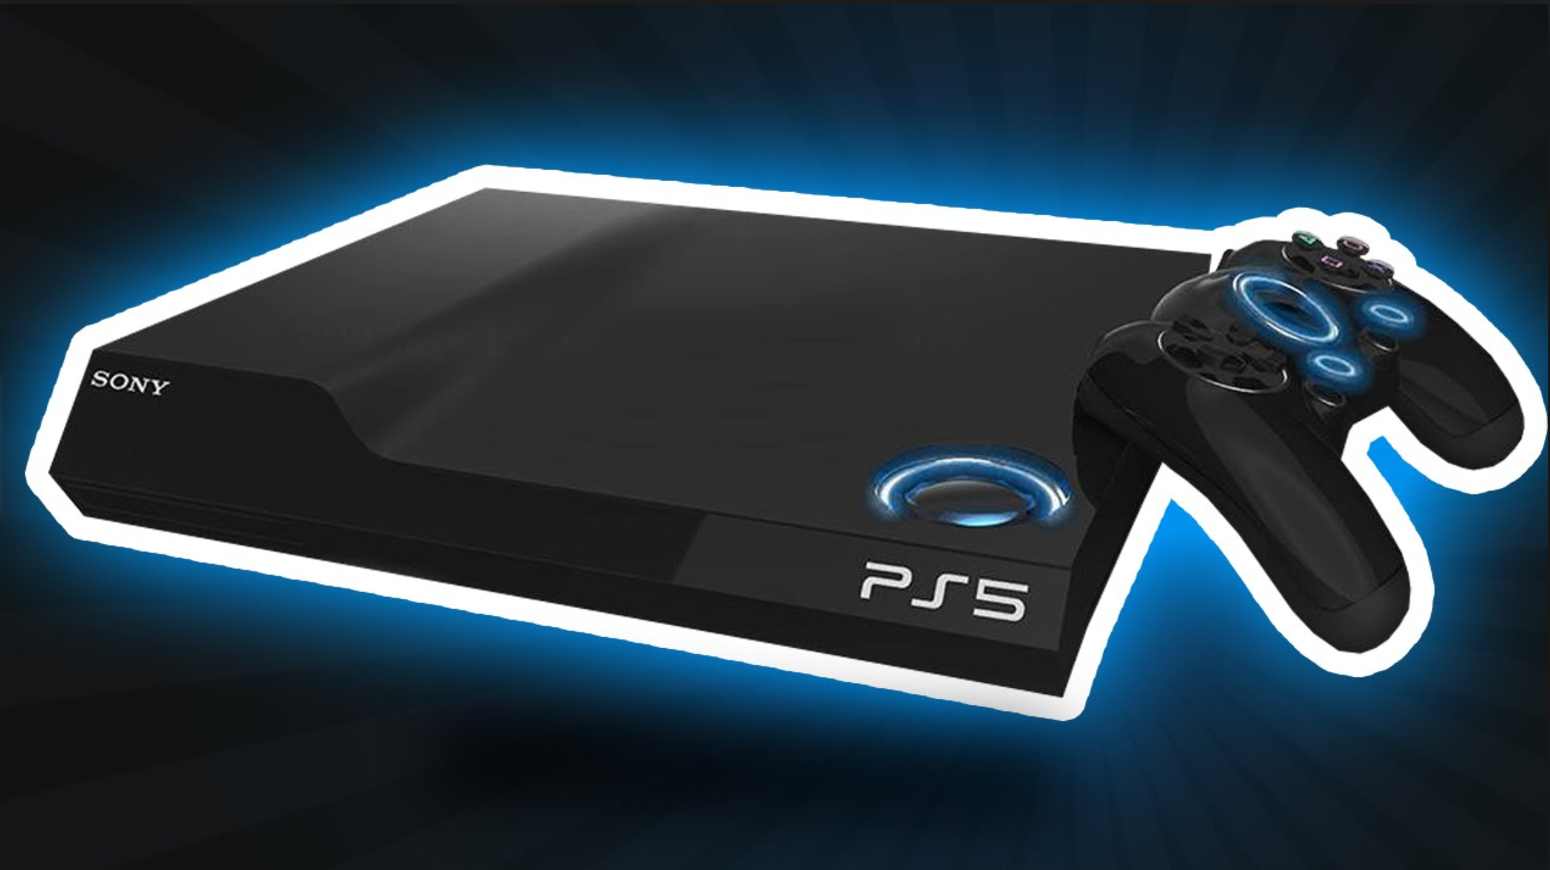 playstation 5 - photo #7